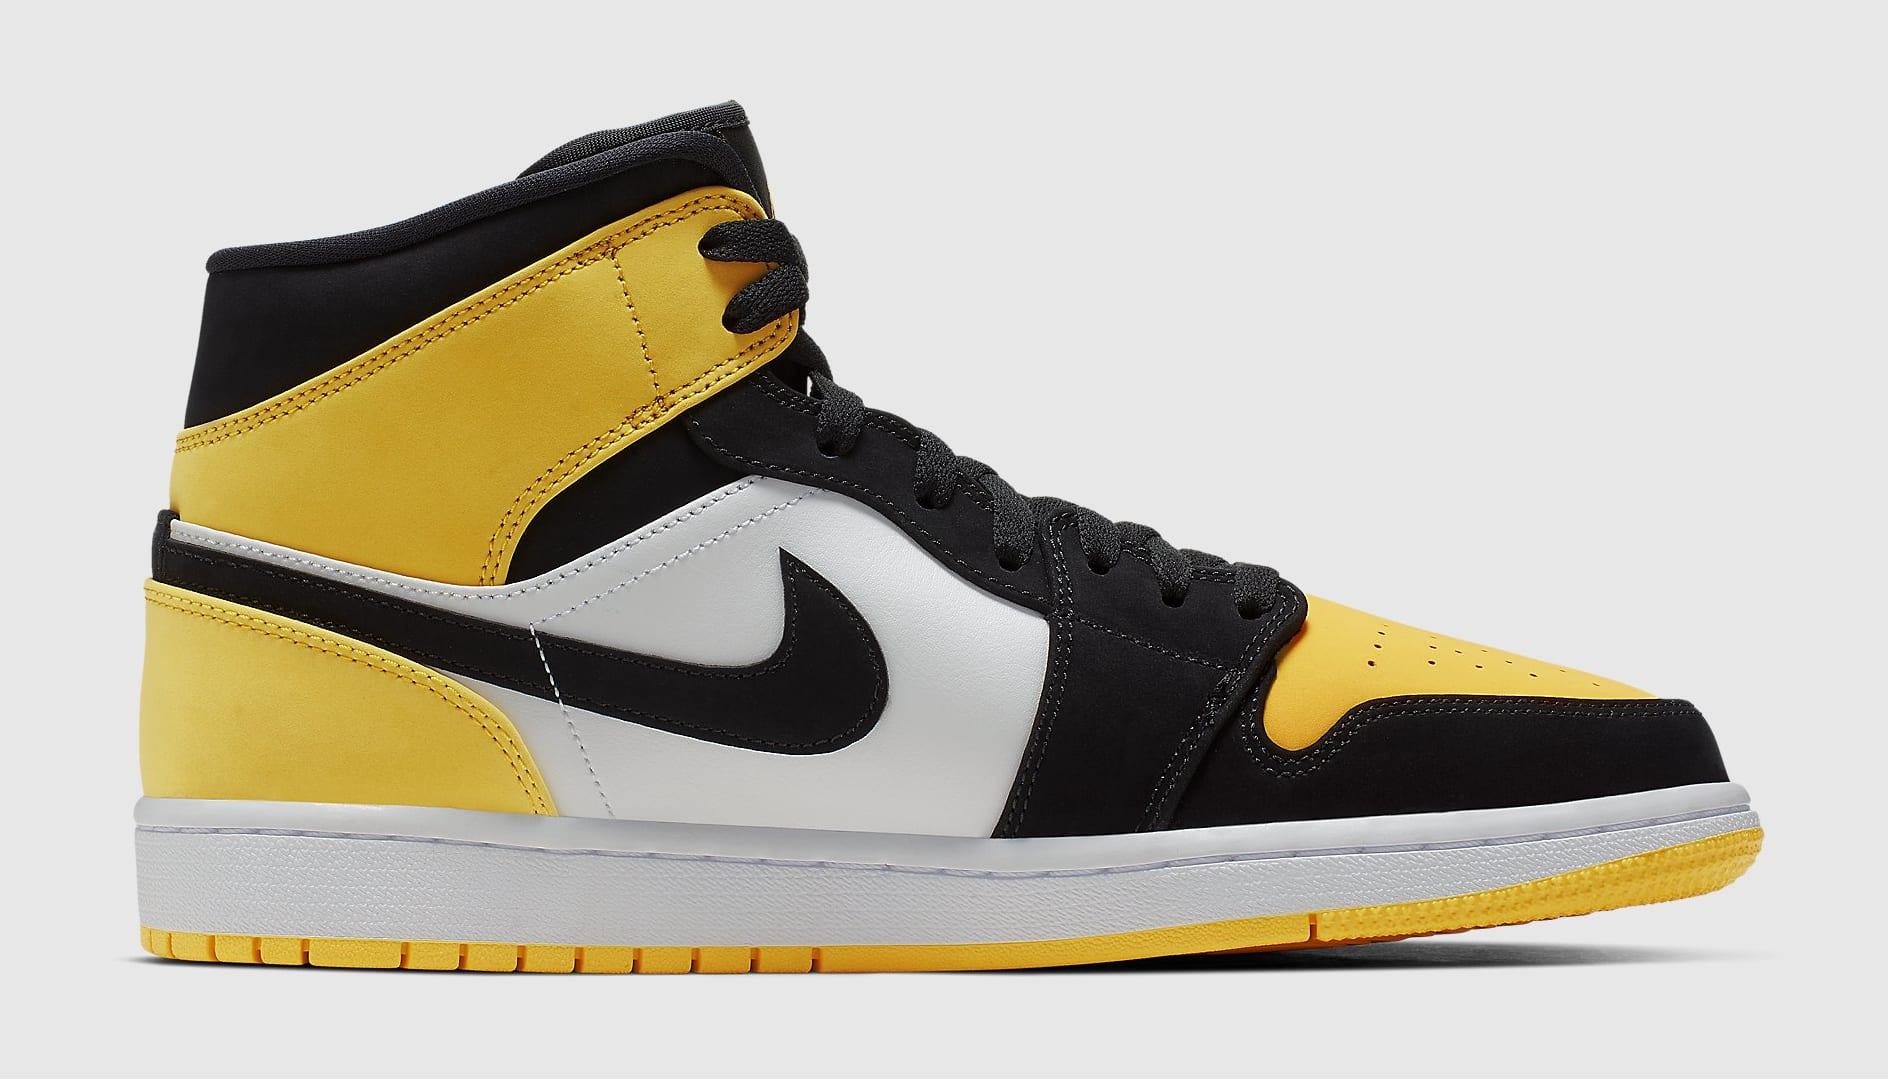 Air Jordan 1 Mid Yellow Toe Release Date 852542-071 Medial